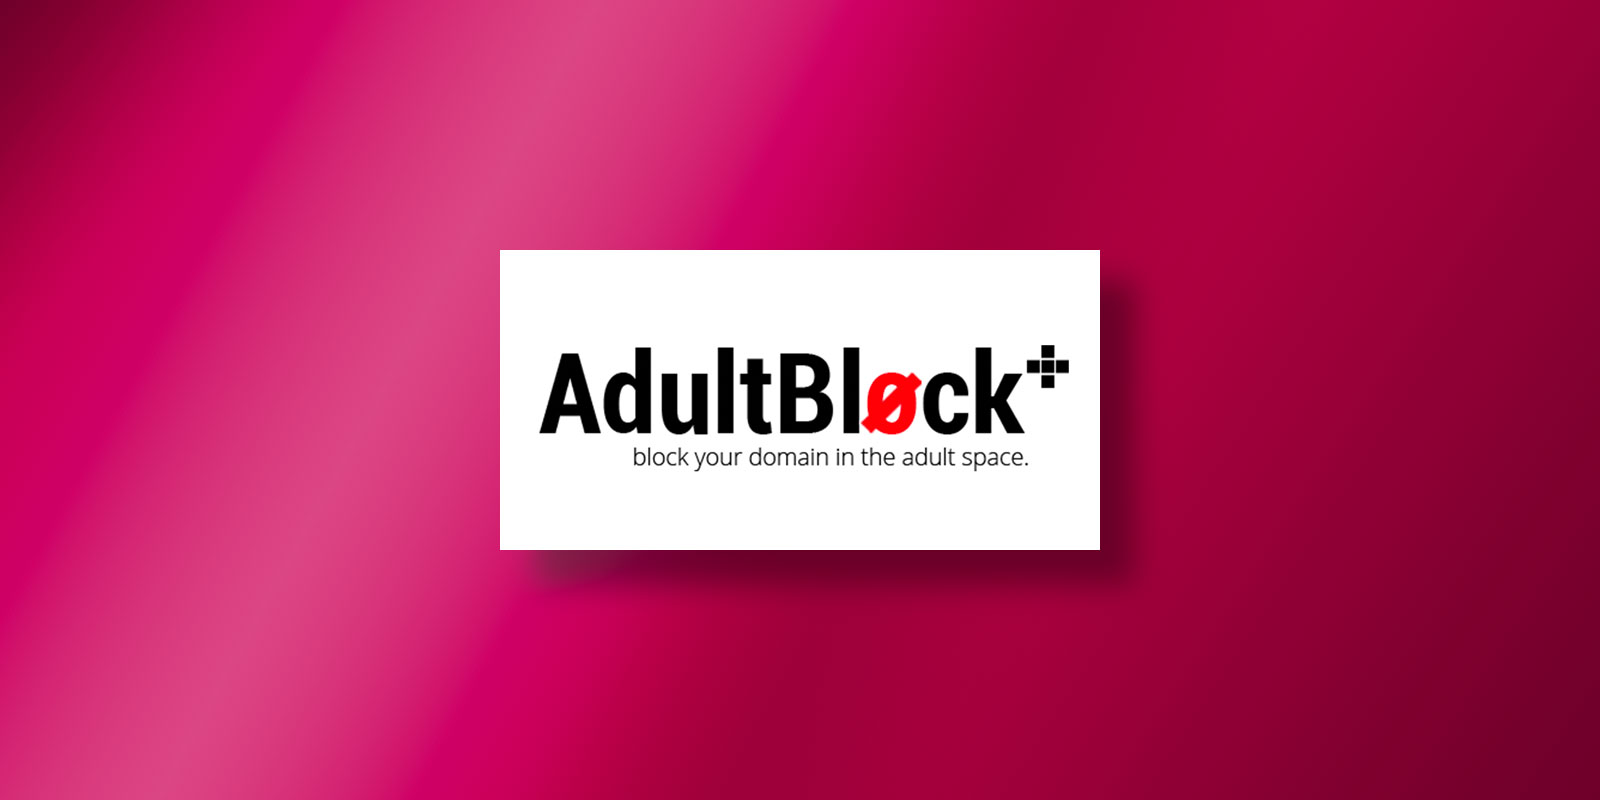 The AdultBlock protection service extends trademark eligibility